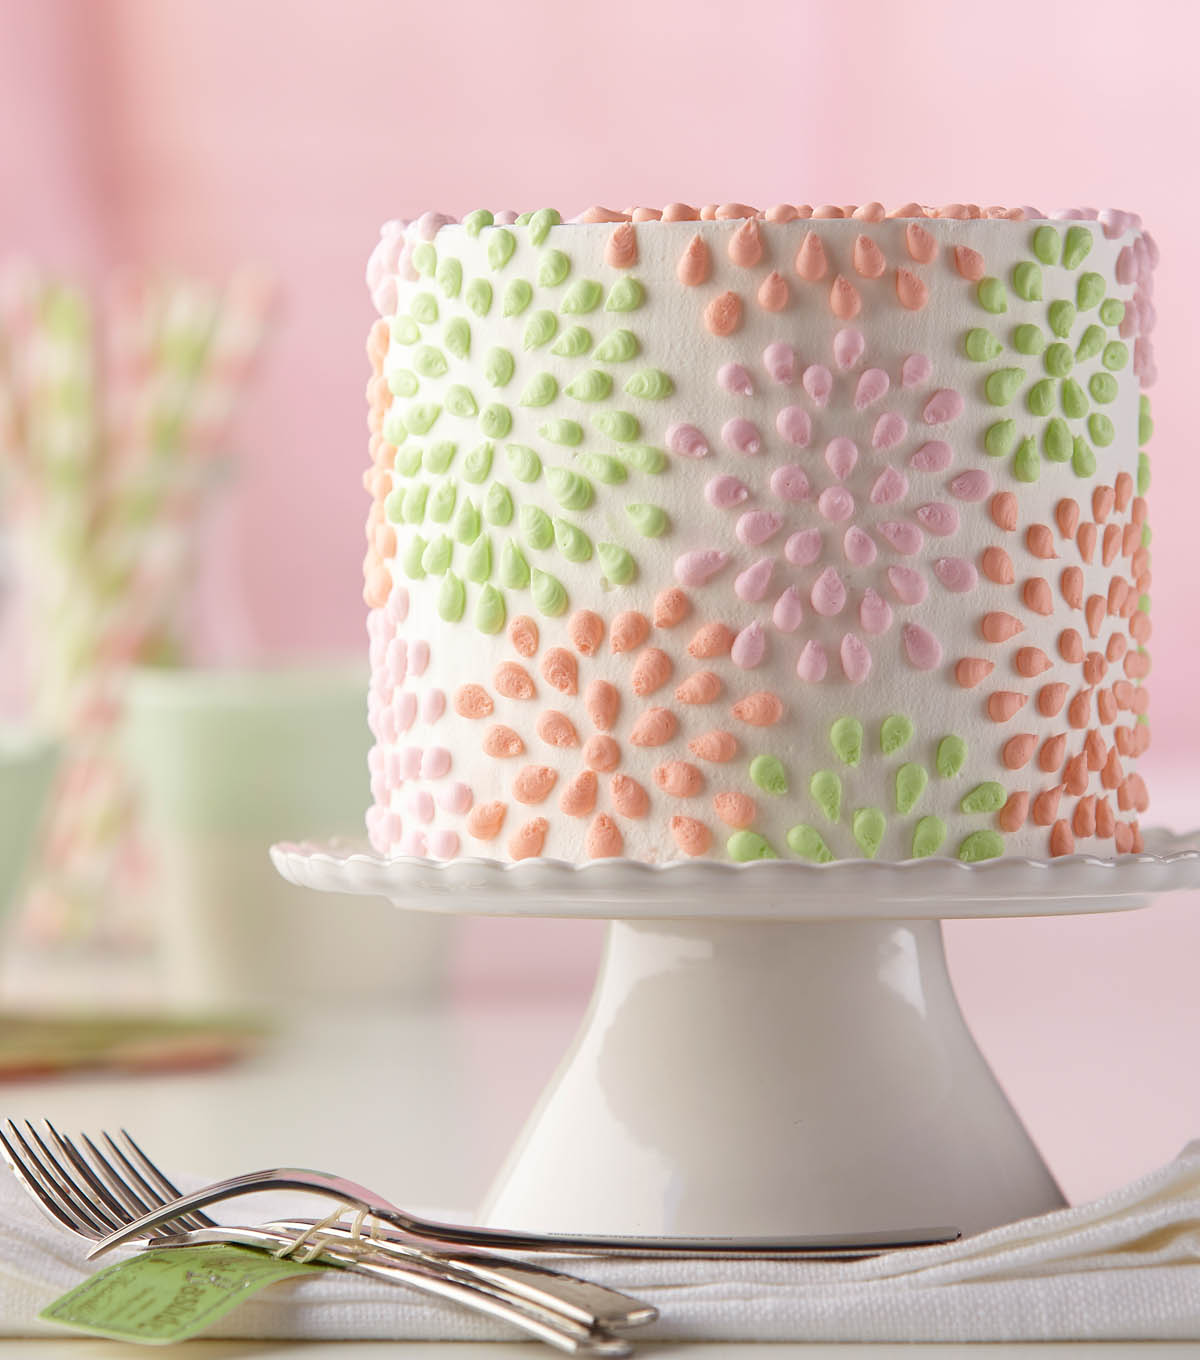 Polka Dotted Flower Cake